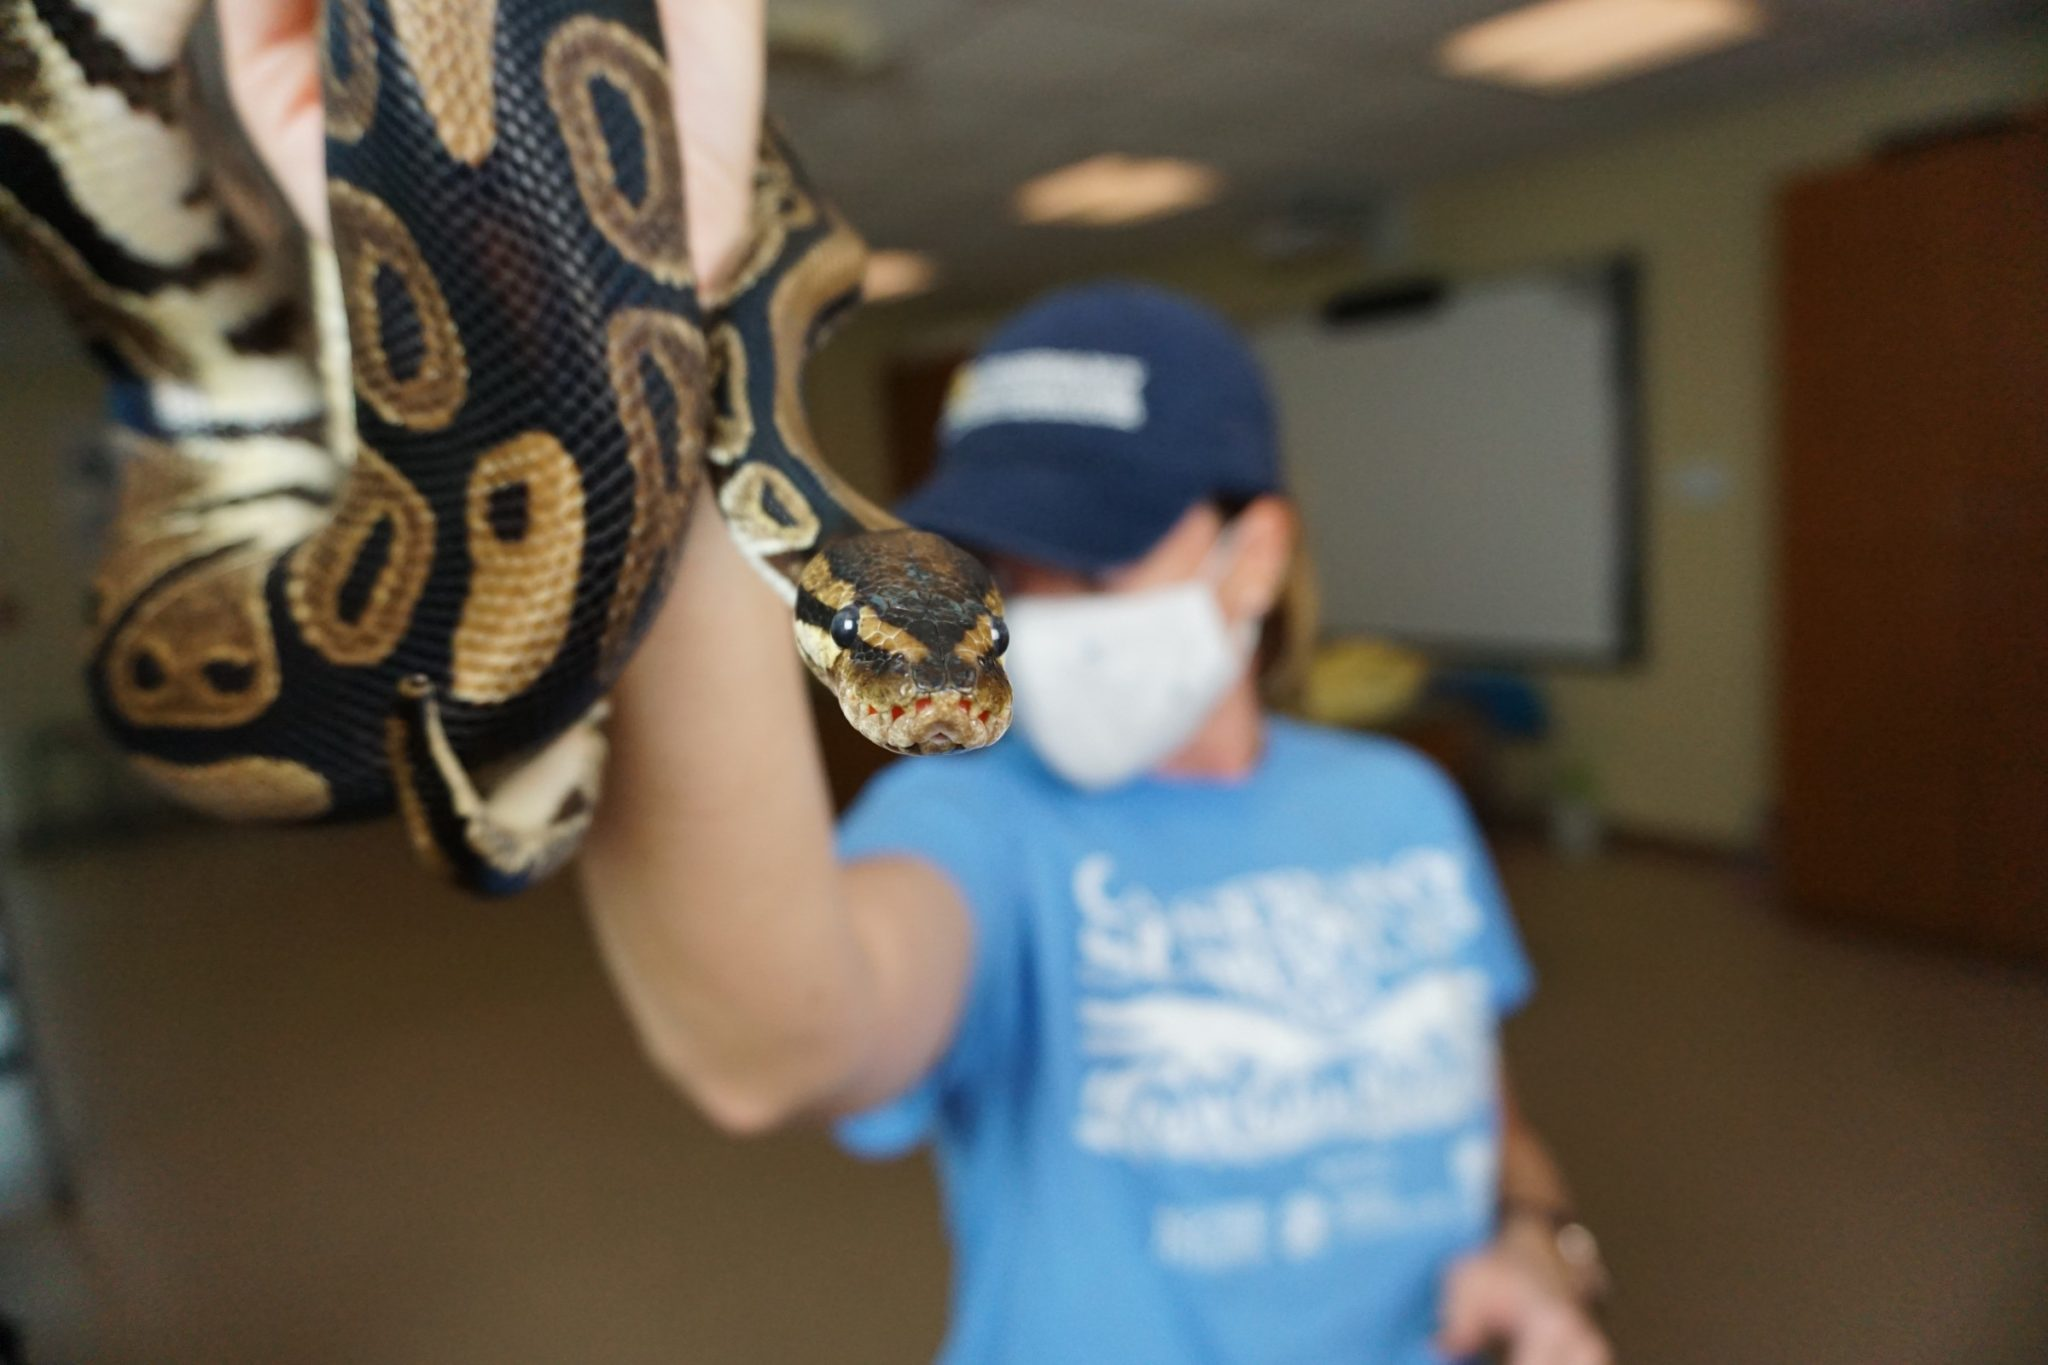 Monty, the Conservancy's ball python animal ambassador meets students during a live virtual animal encounter